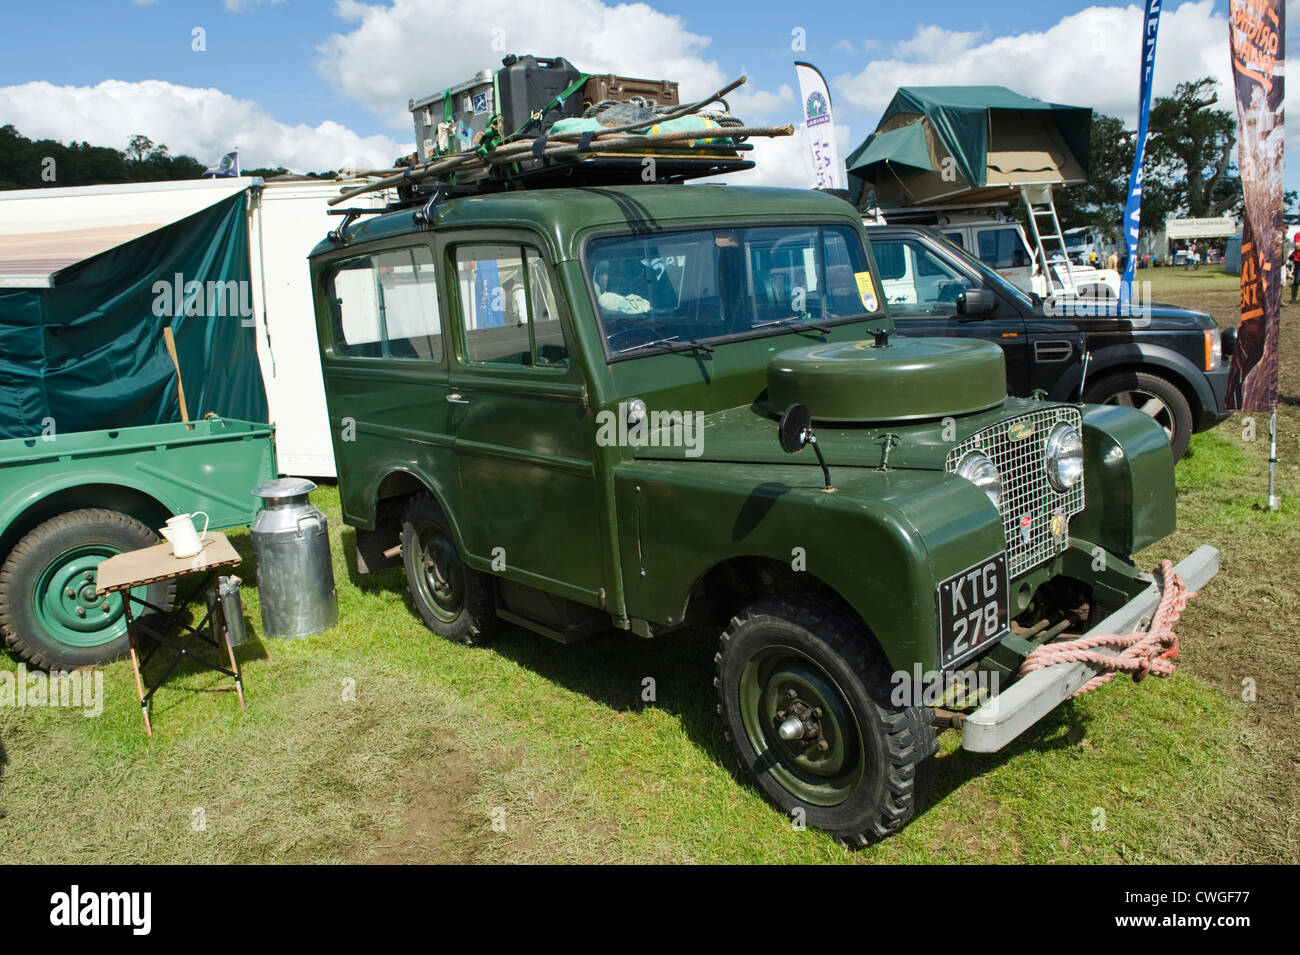 Display of old historic restored Land Rover 4x4 vehicles at annual